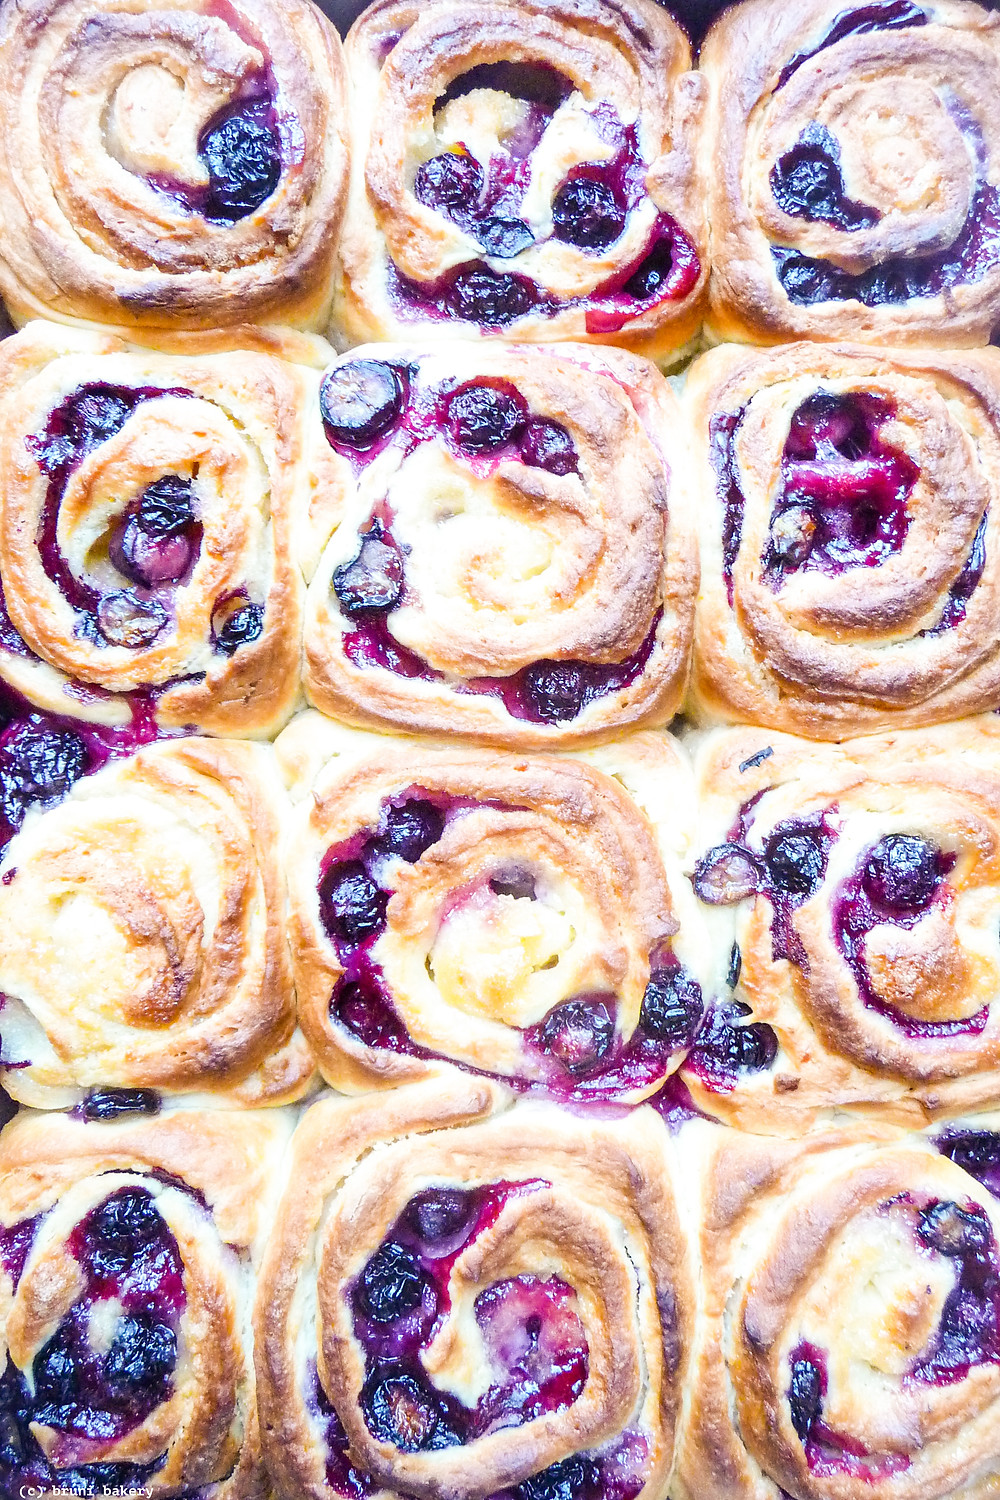 Overnight Lemon and Blueberry Rolls